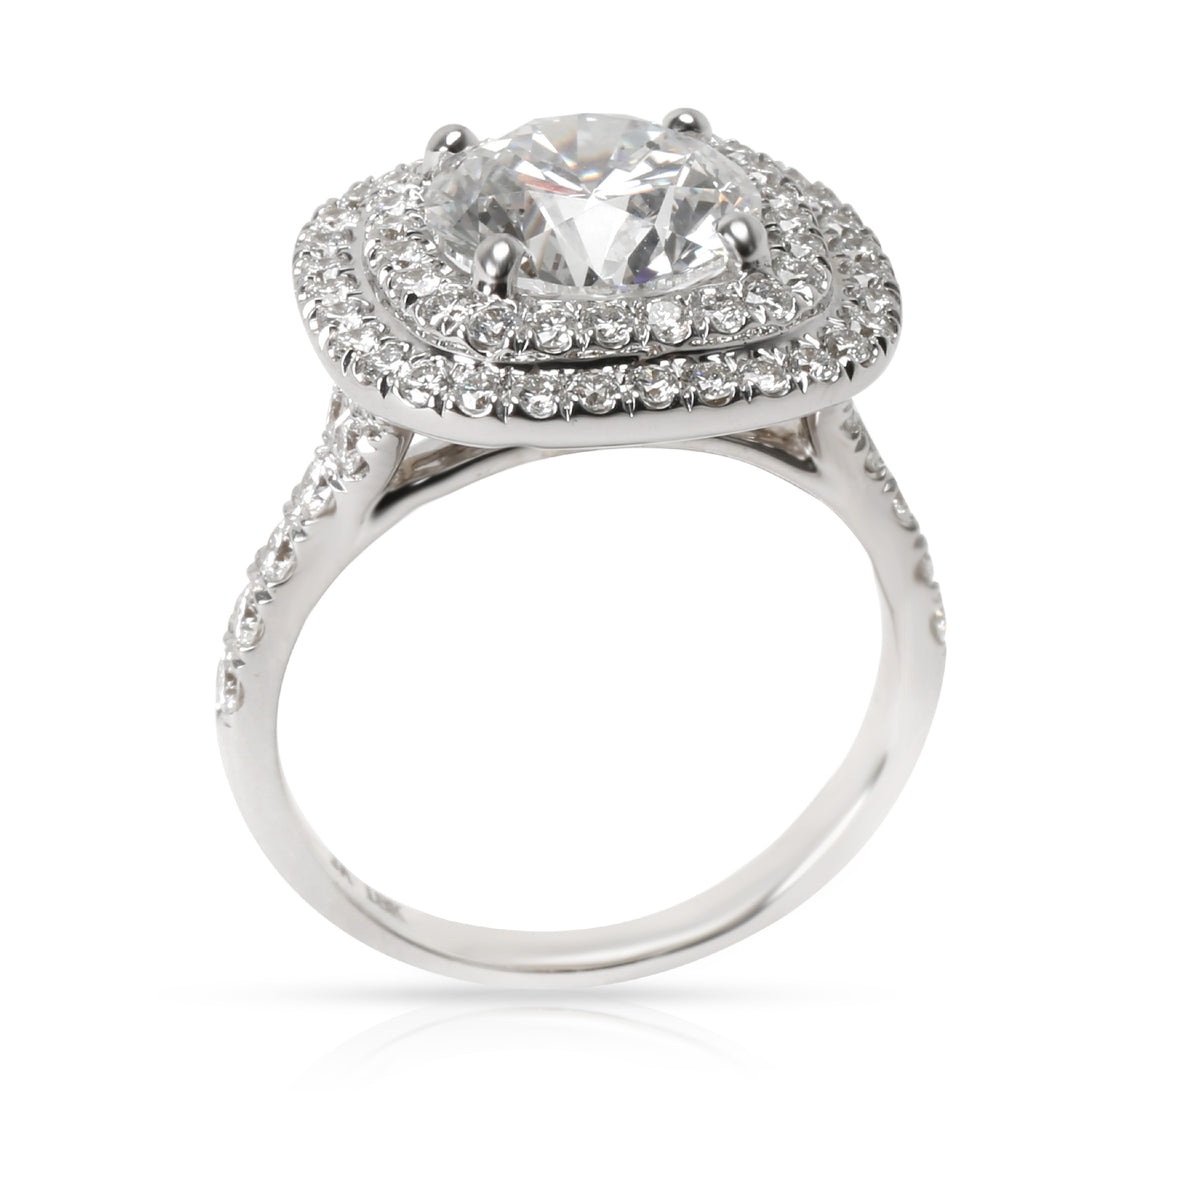 James Allen Diamond Double Halo Engagement Ring in 18K White Gold 1.91 ct E/SI2